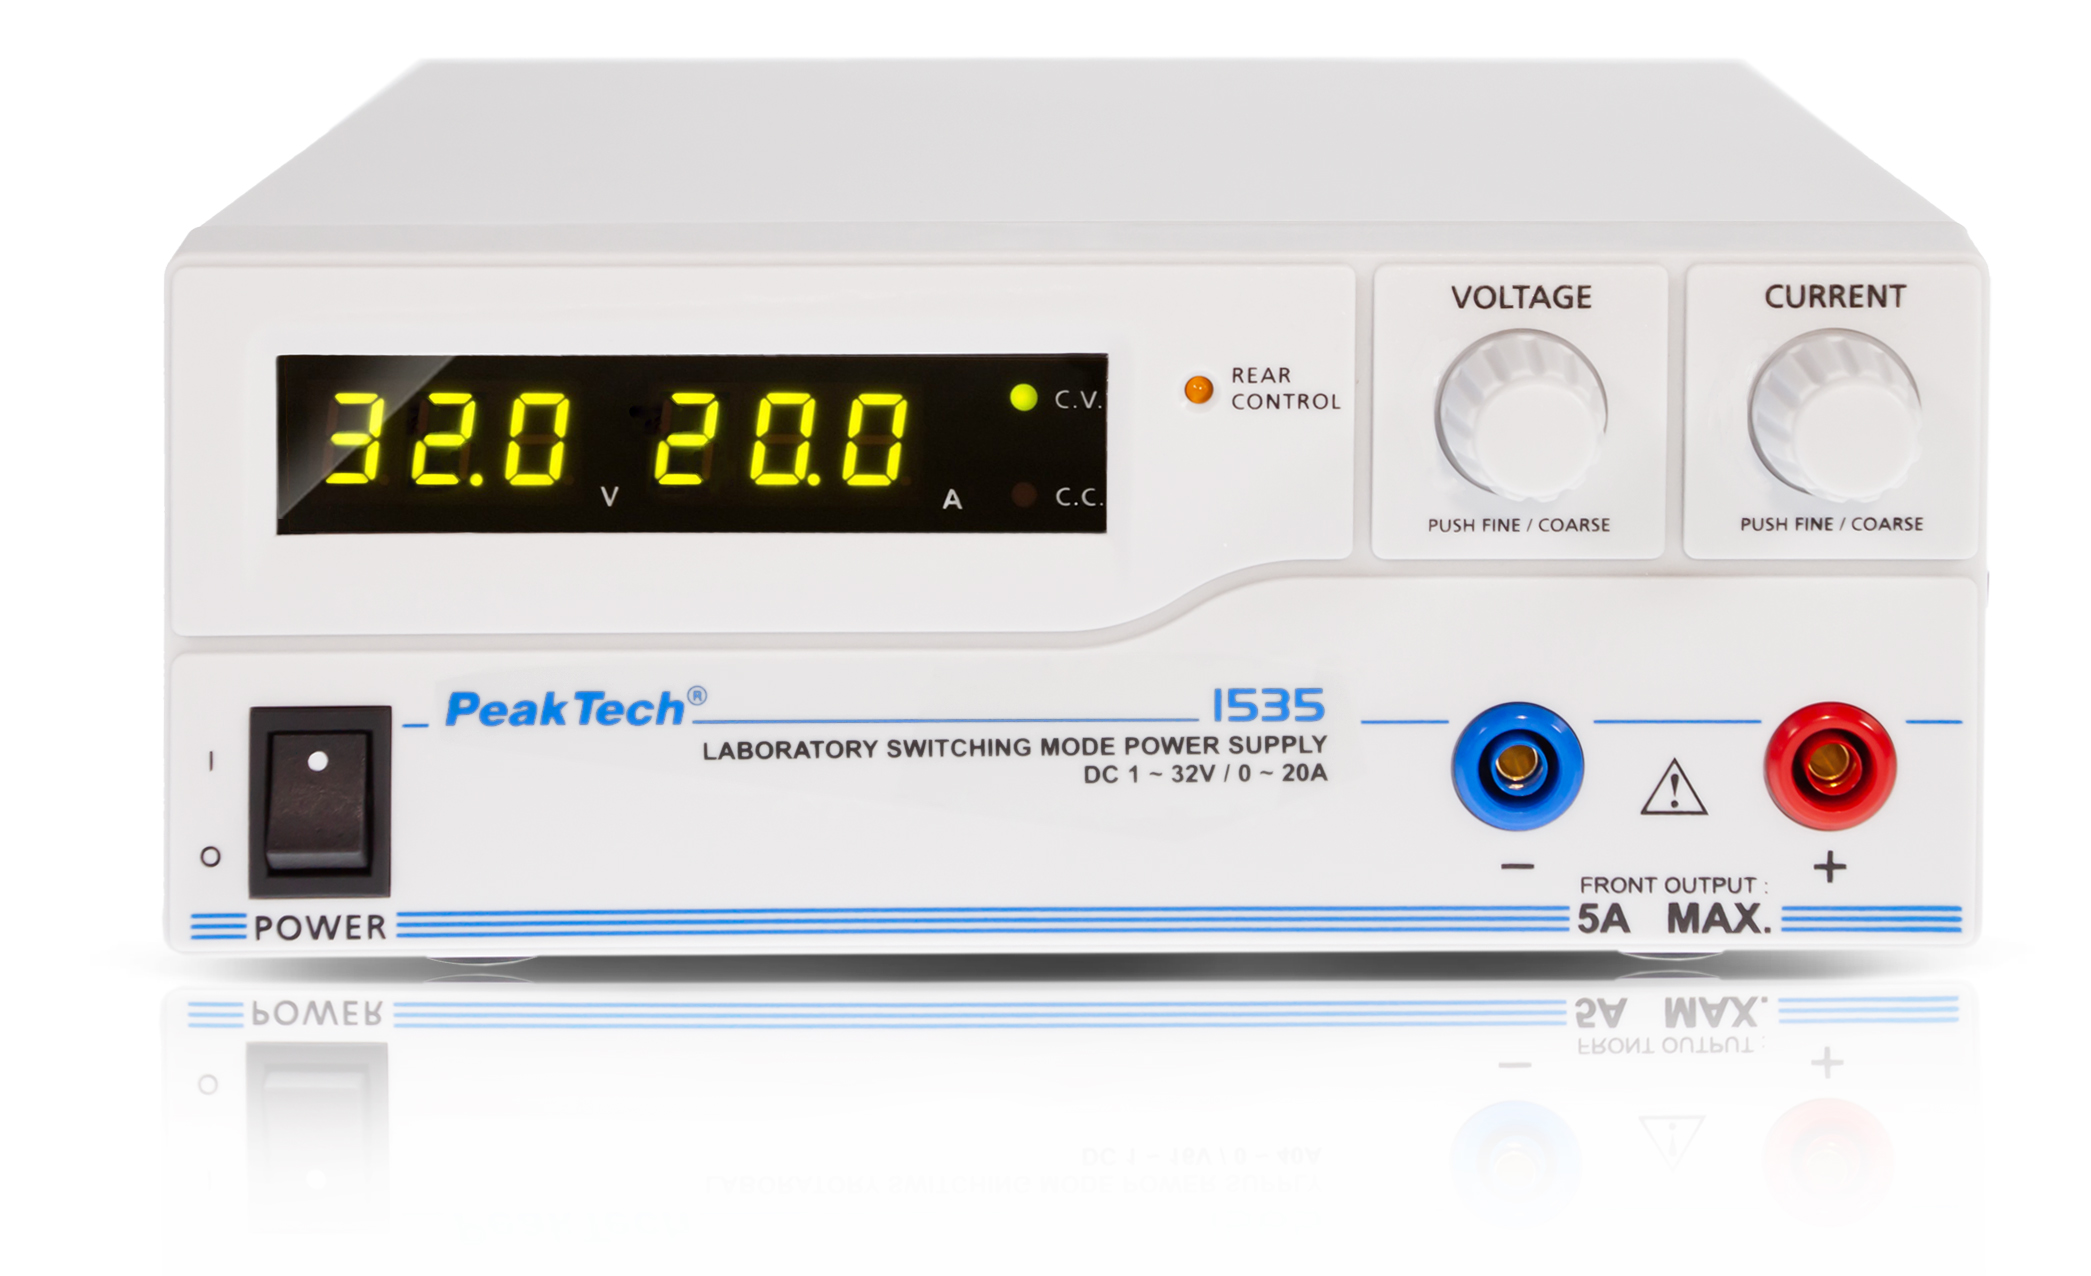 «PeakTech® P 1535» Laboratory power supply DC 1 - 32 V / 0 - 20 A